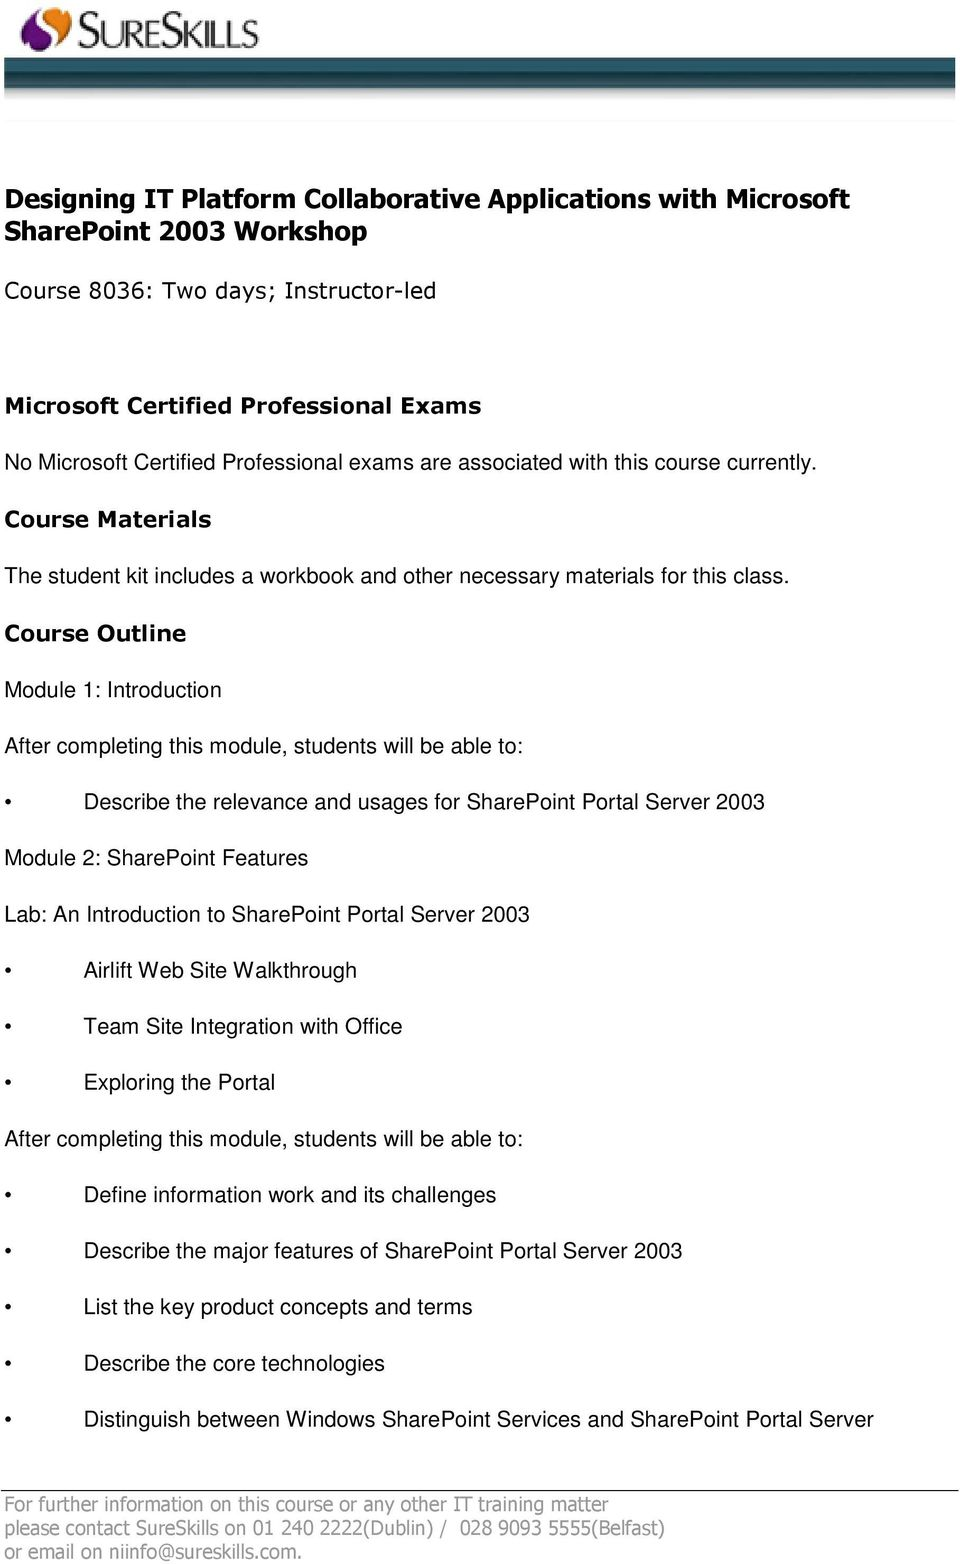 Course Outline Module 1: Introduction Describe the relevance and usages for SharePoint Portal Server 2003 Module 2: SharePoint Features Lab: An Introduction to SharePoint Portal Server 2003 Airlift